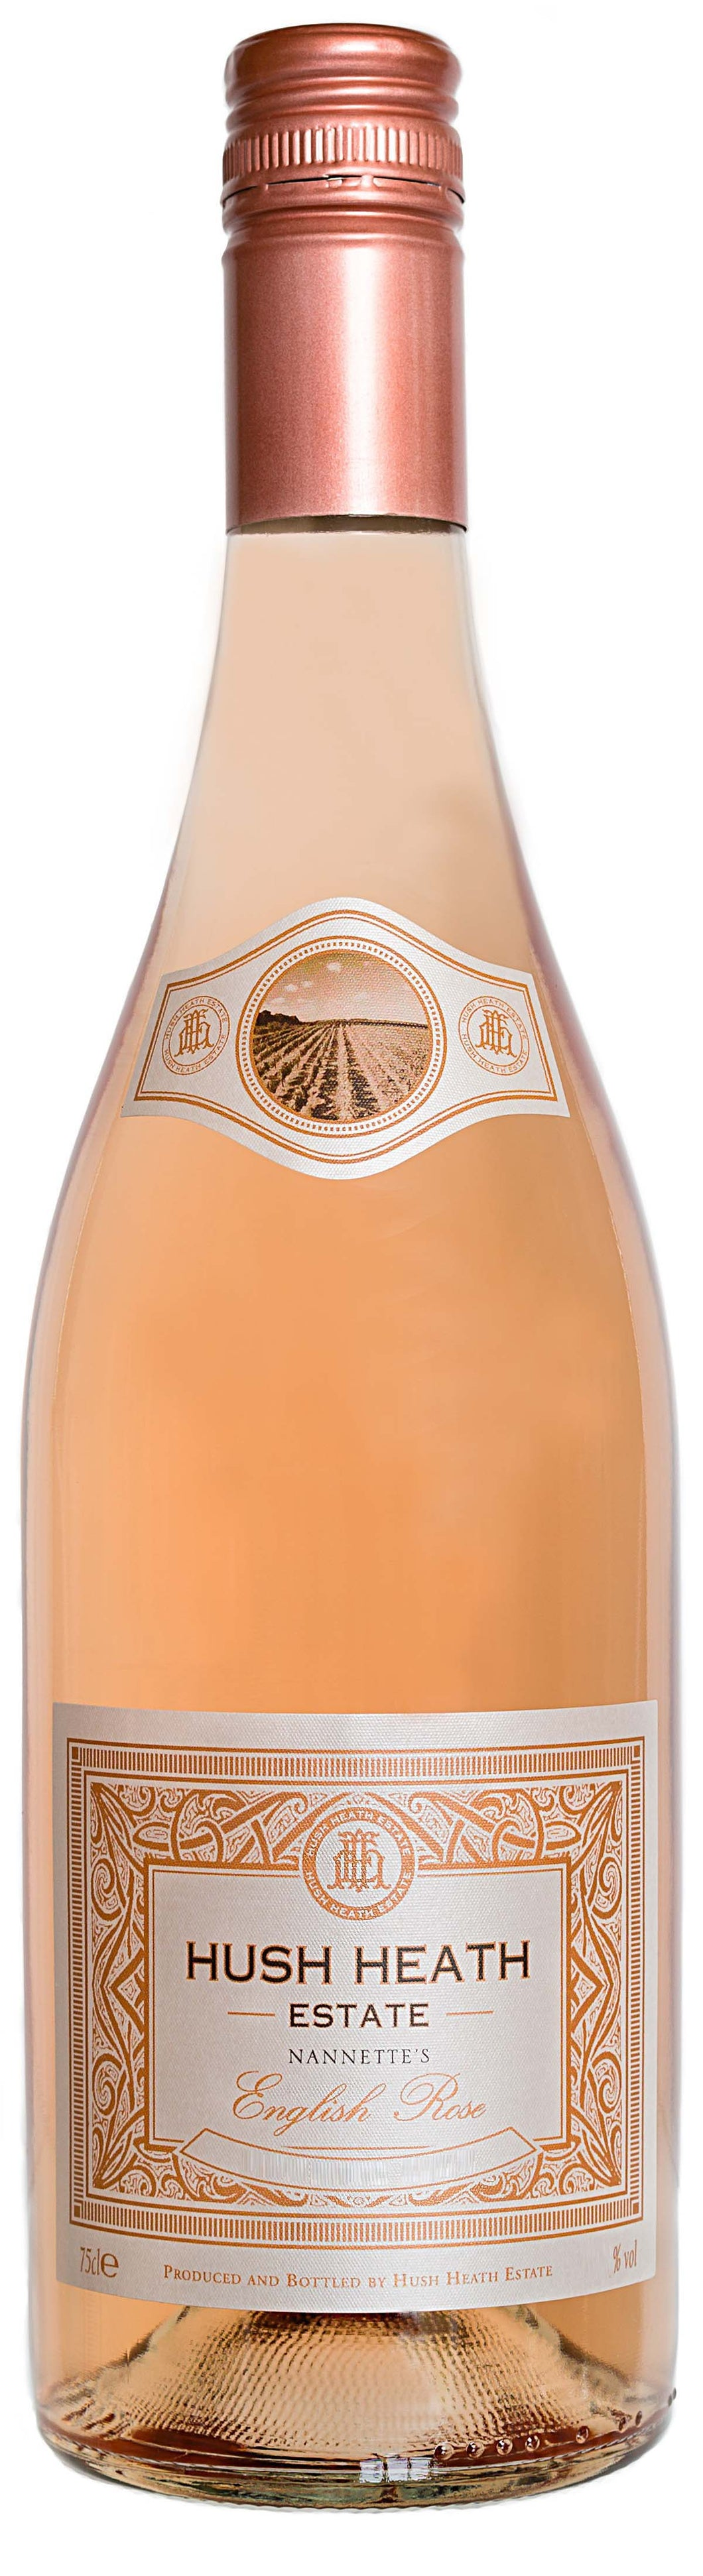 12 bottles of 2017 'Nannette's English Rose', Hush Heath Estate, Southern England